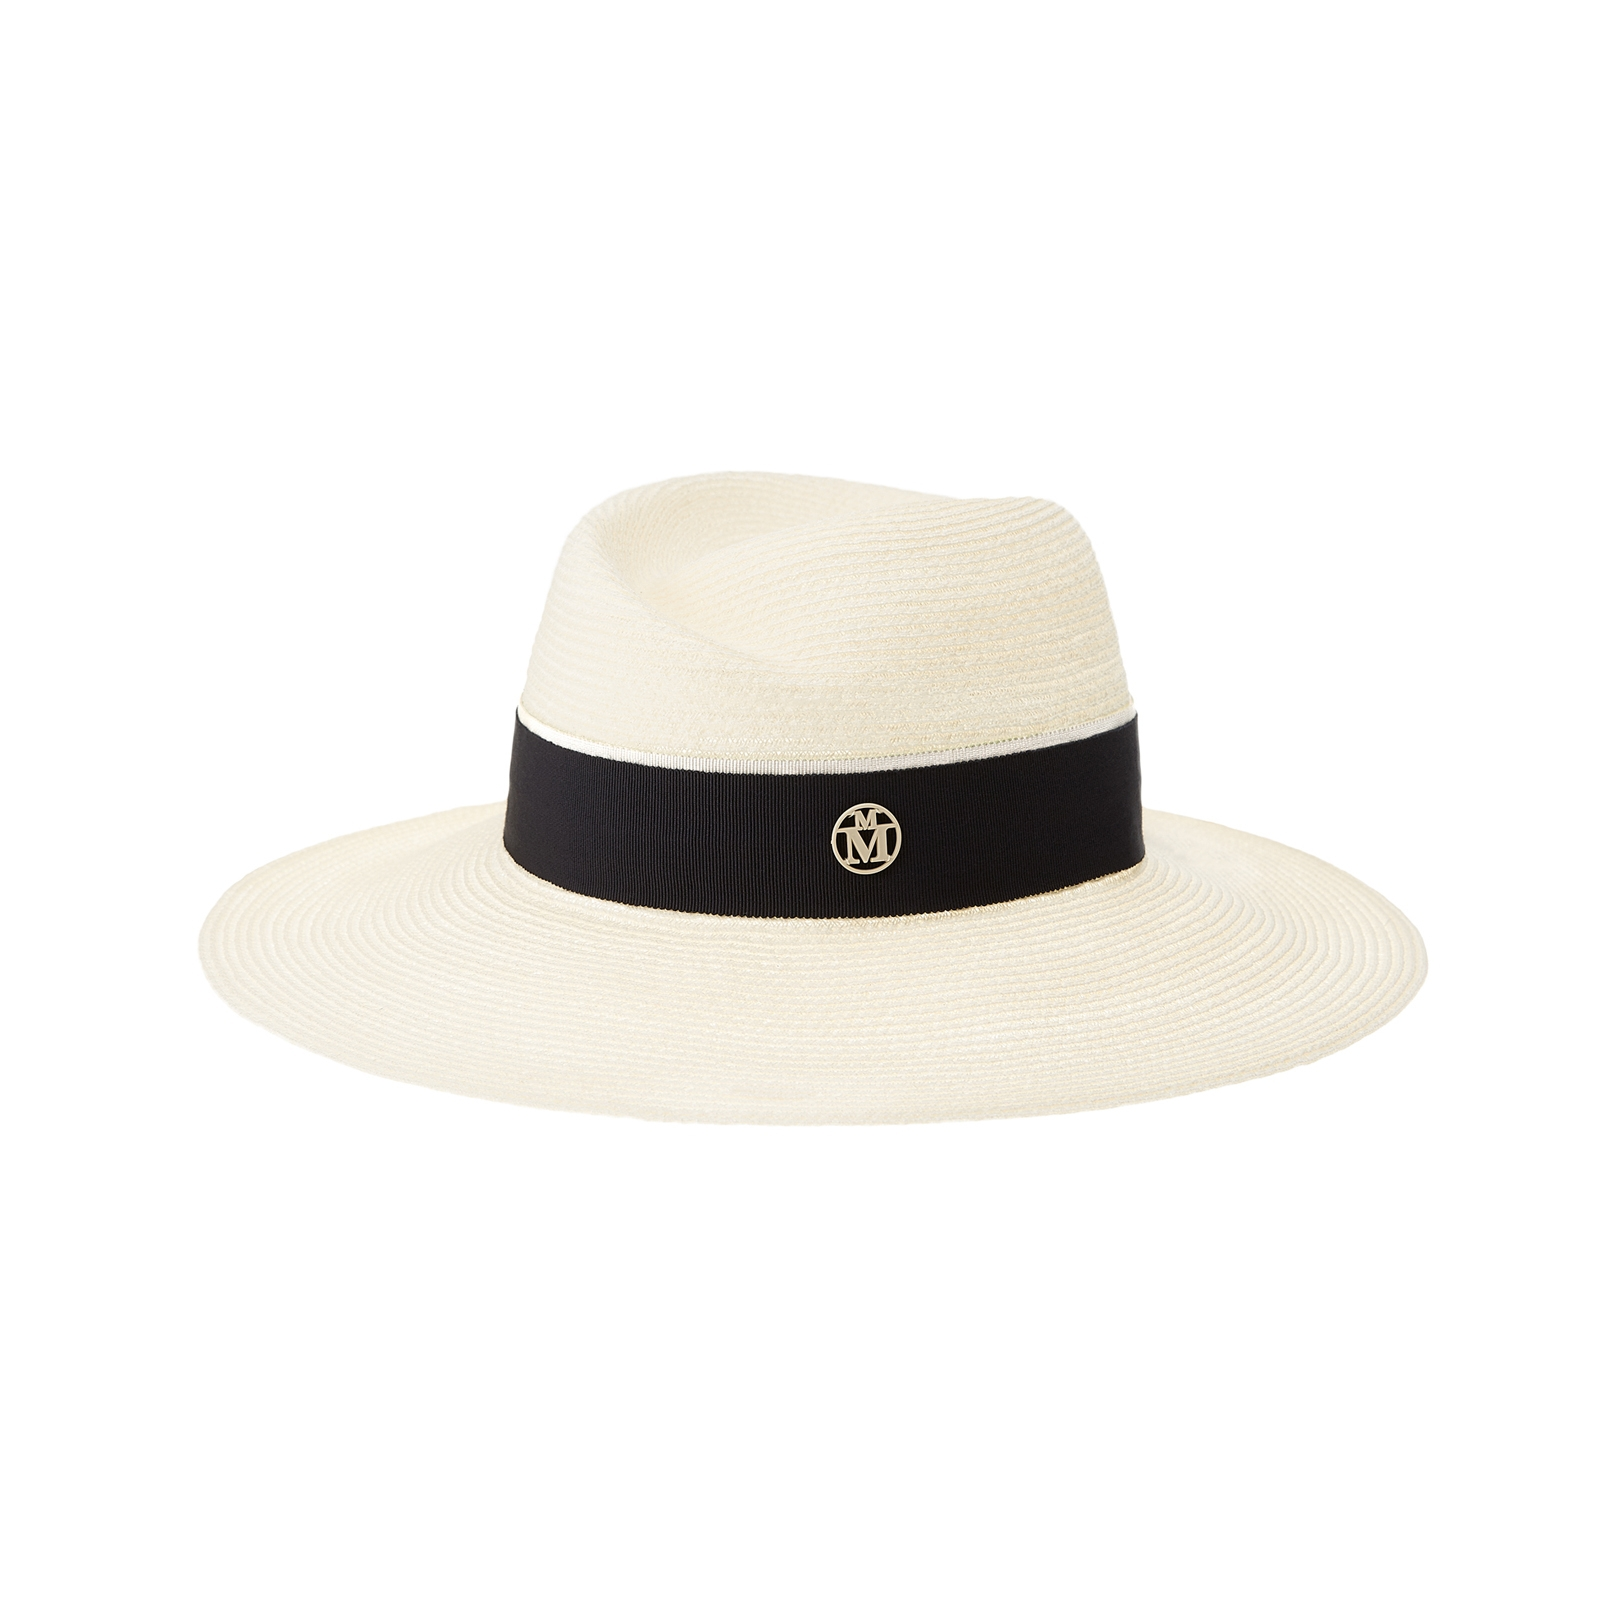 Maison Michel (Virginie) Fedor Straw Hat